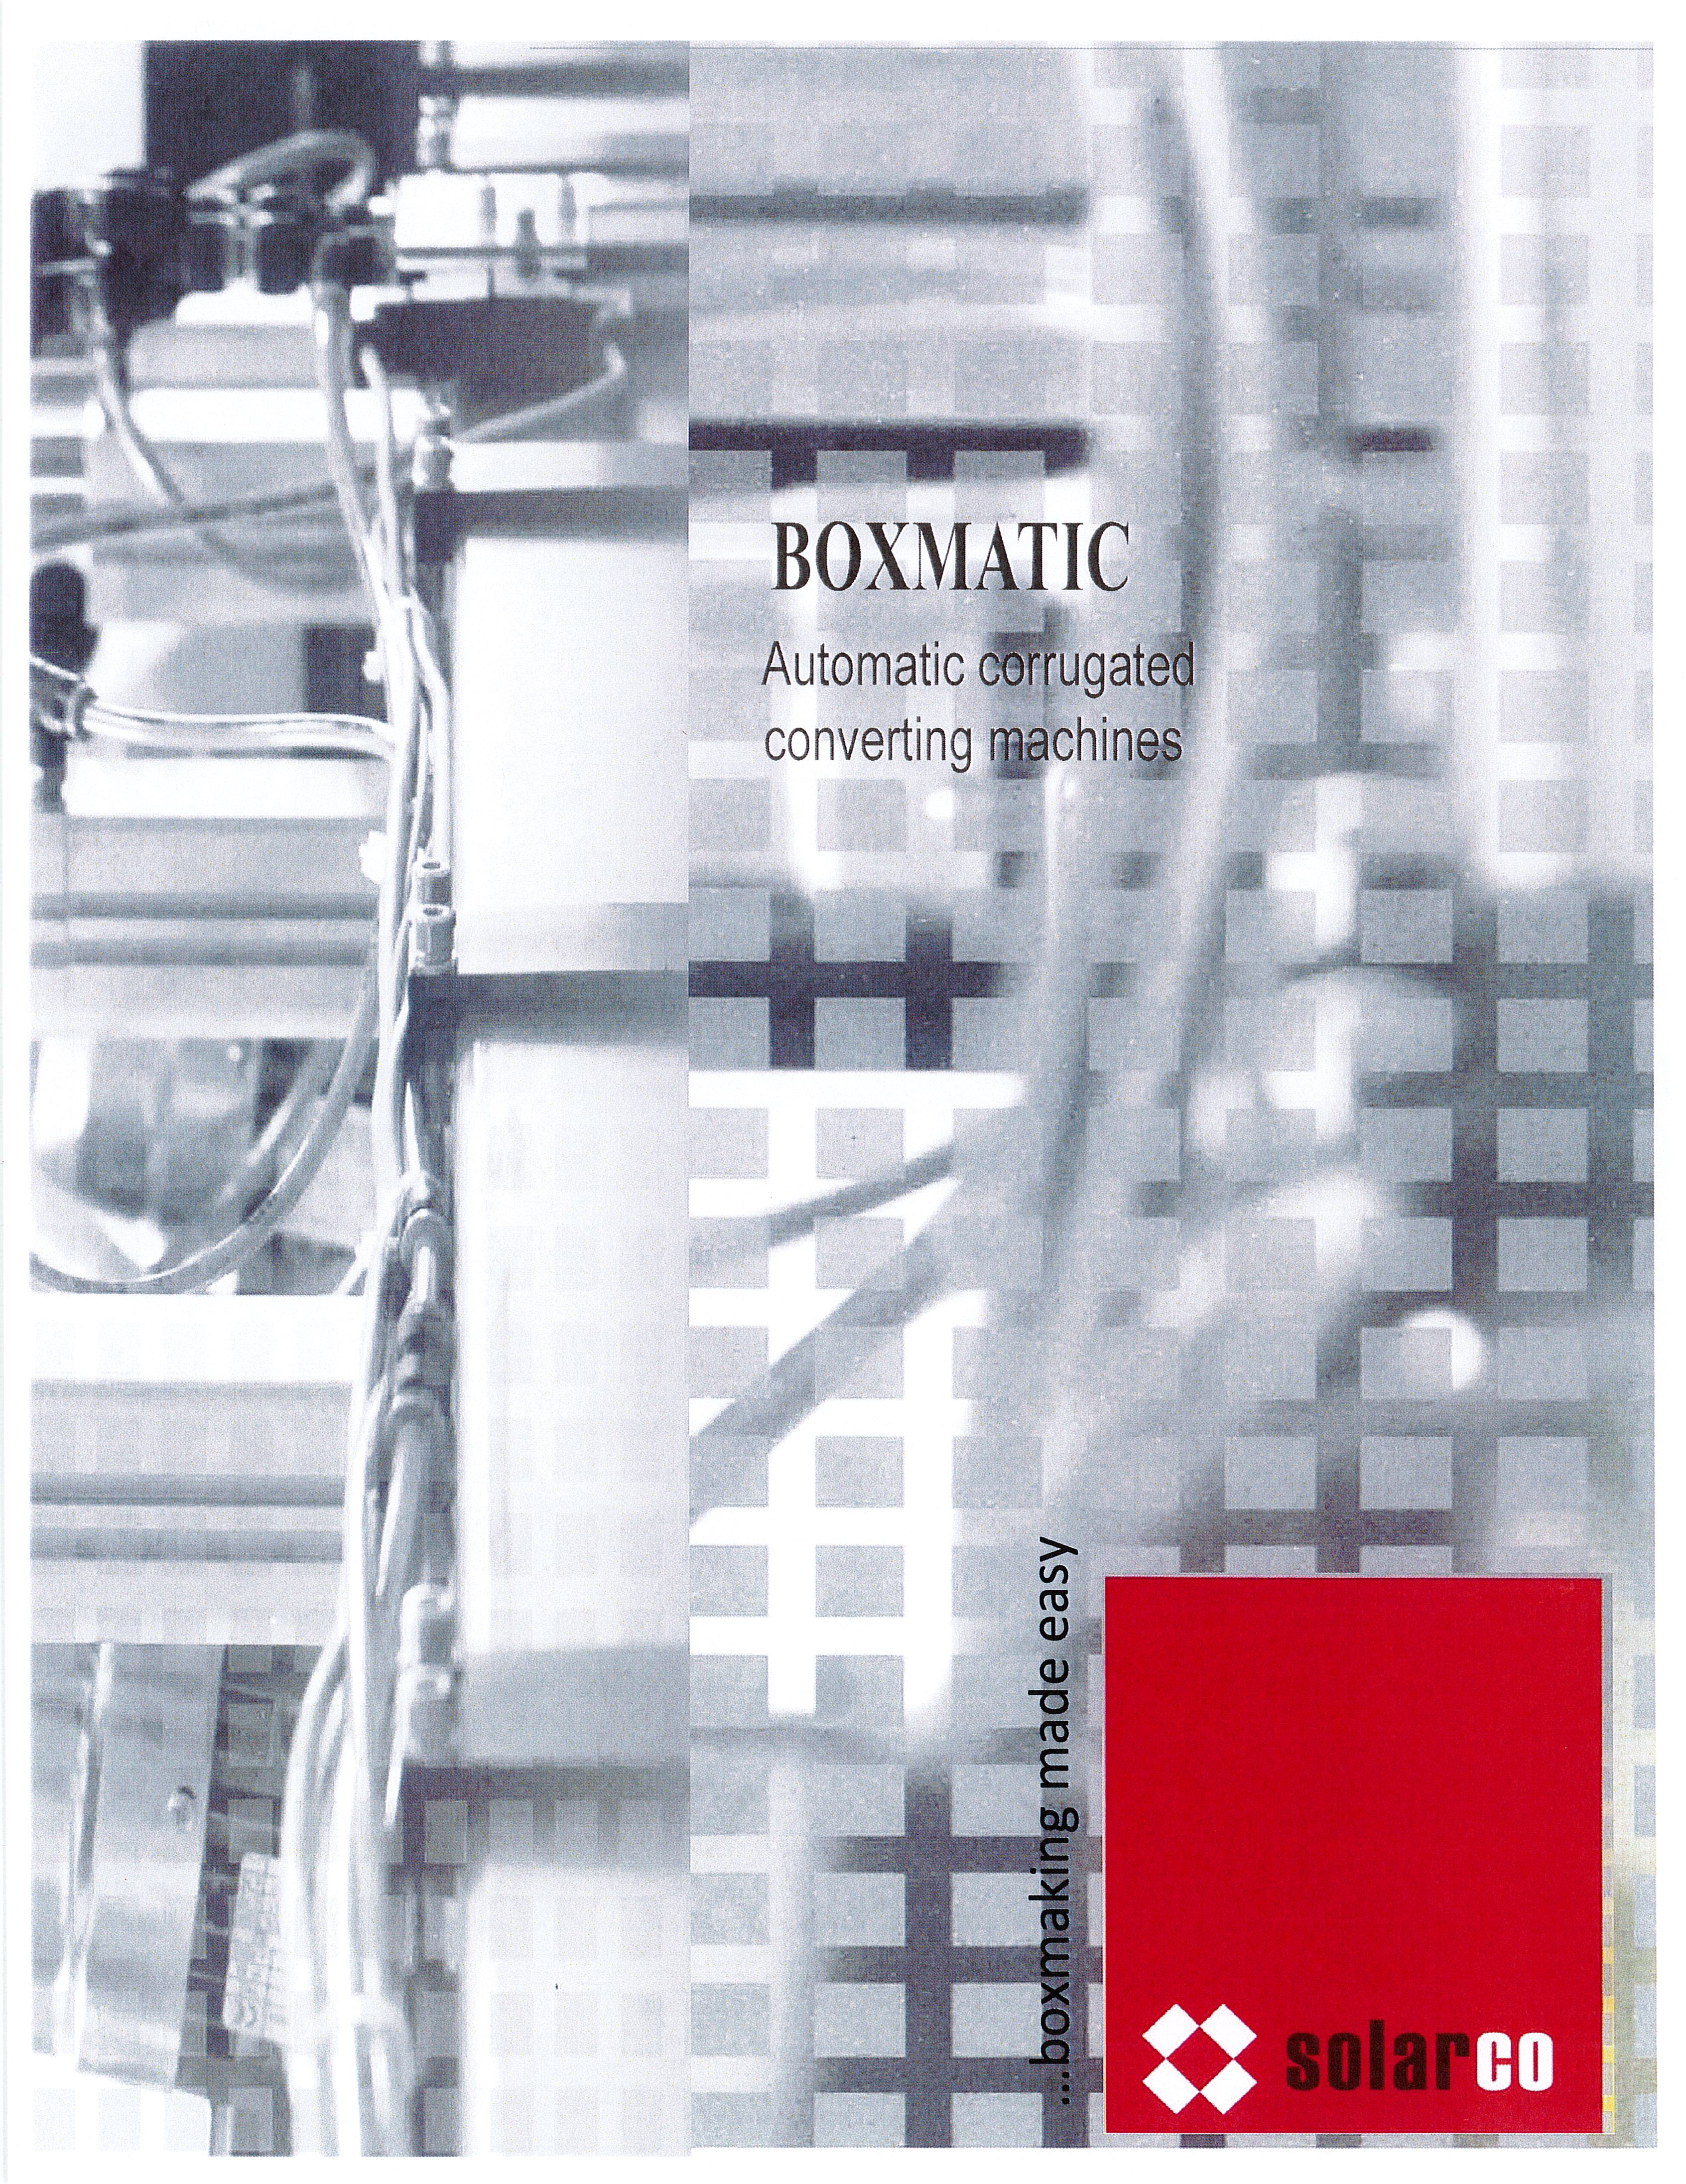 Learn more in the Solarco BOXMATIC Automatic Brochure